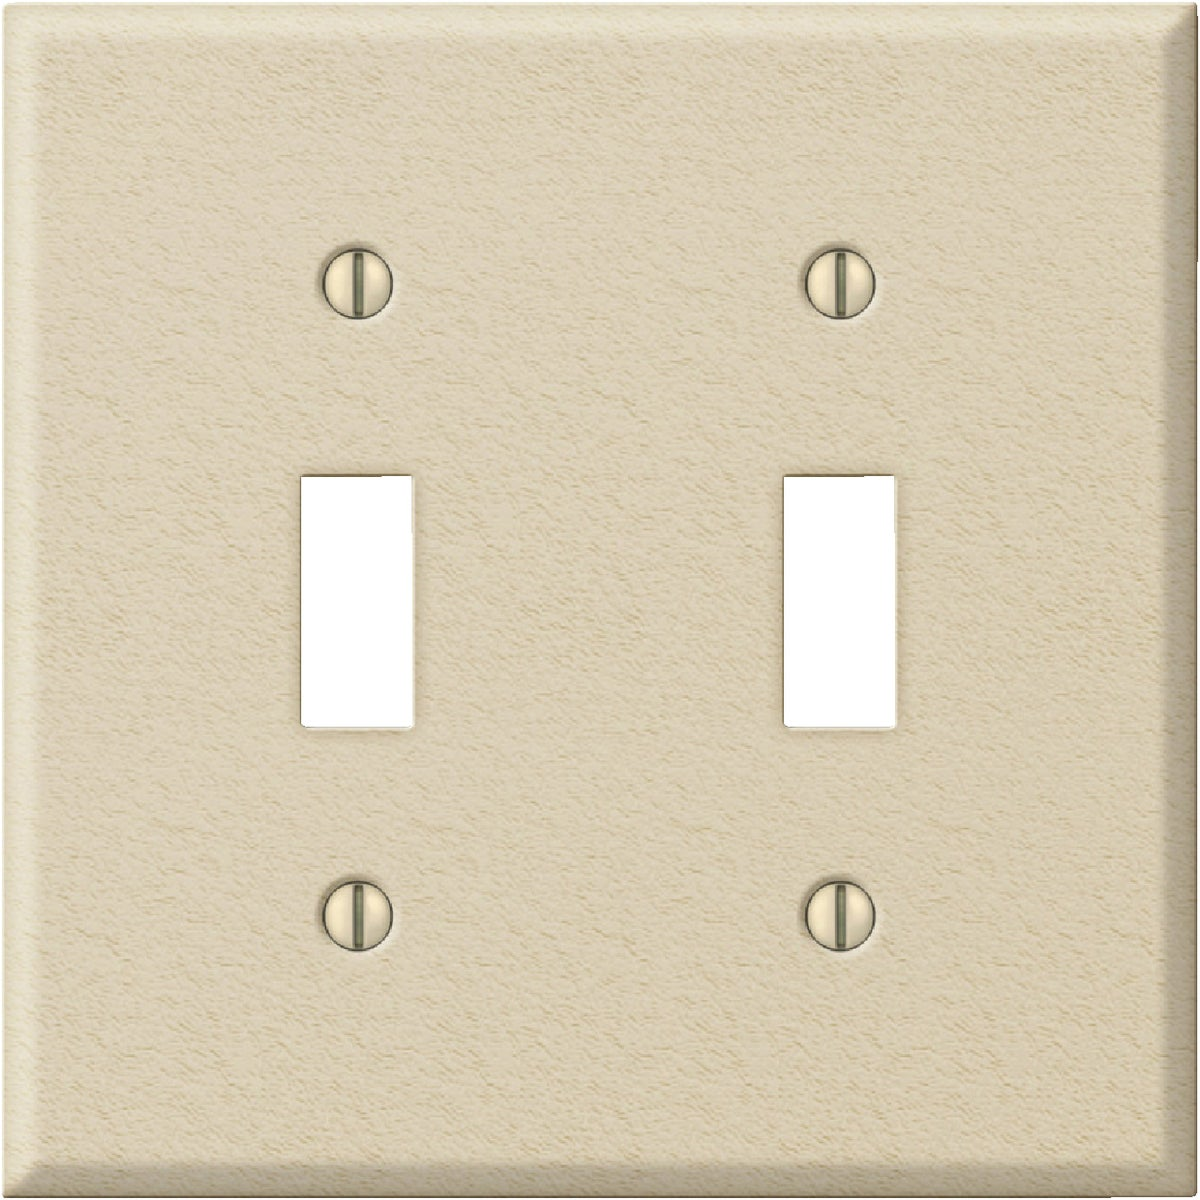 IV DBL SWITCH WALL PLATE - 8IK102 by Jackson Deerfield Mf